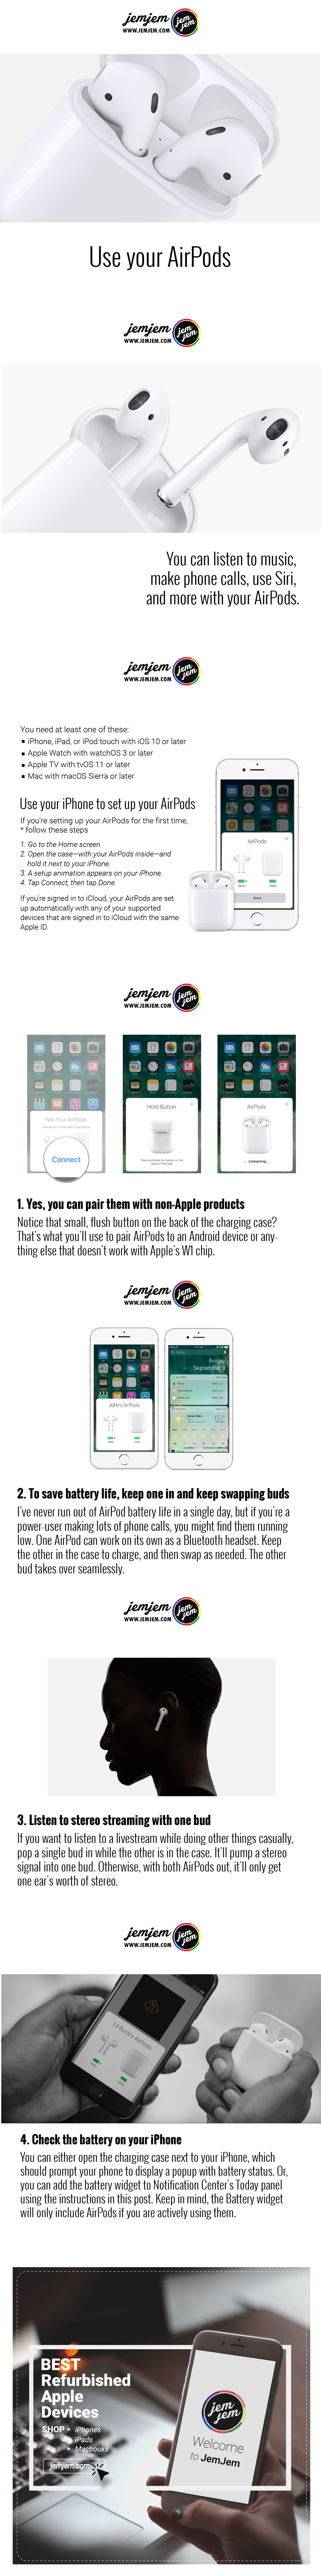 Use Your Airpods Apple Products Using Siri Apple Tv